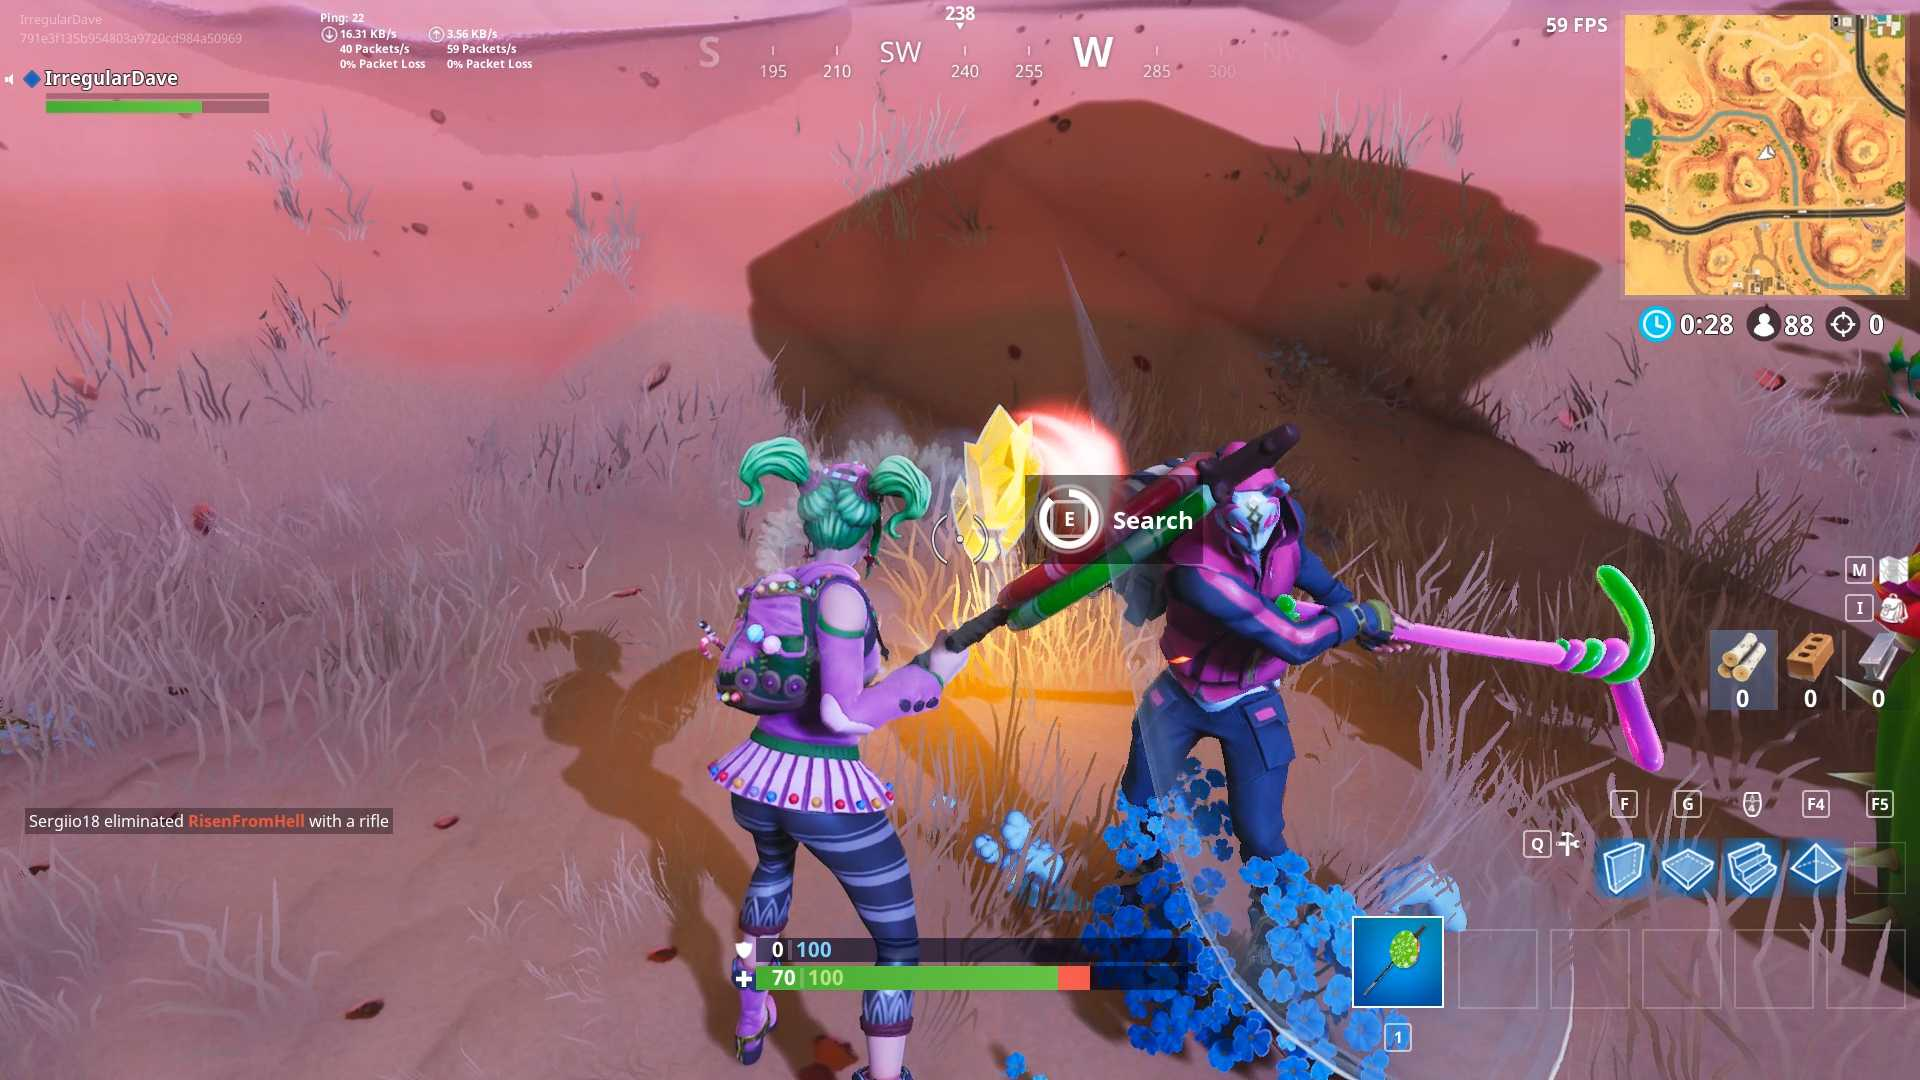 Fortnite Challenge Guide For Season 5: Where To Search Between An Oasis, Rock Archway, And Dinosaurs (Week 2)